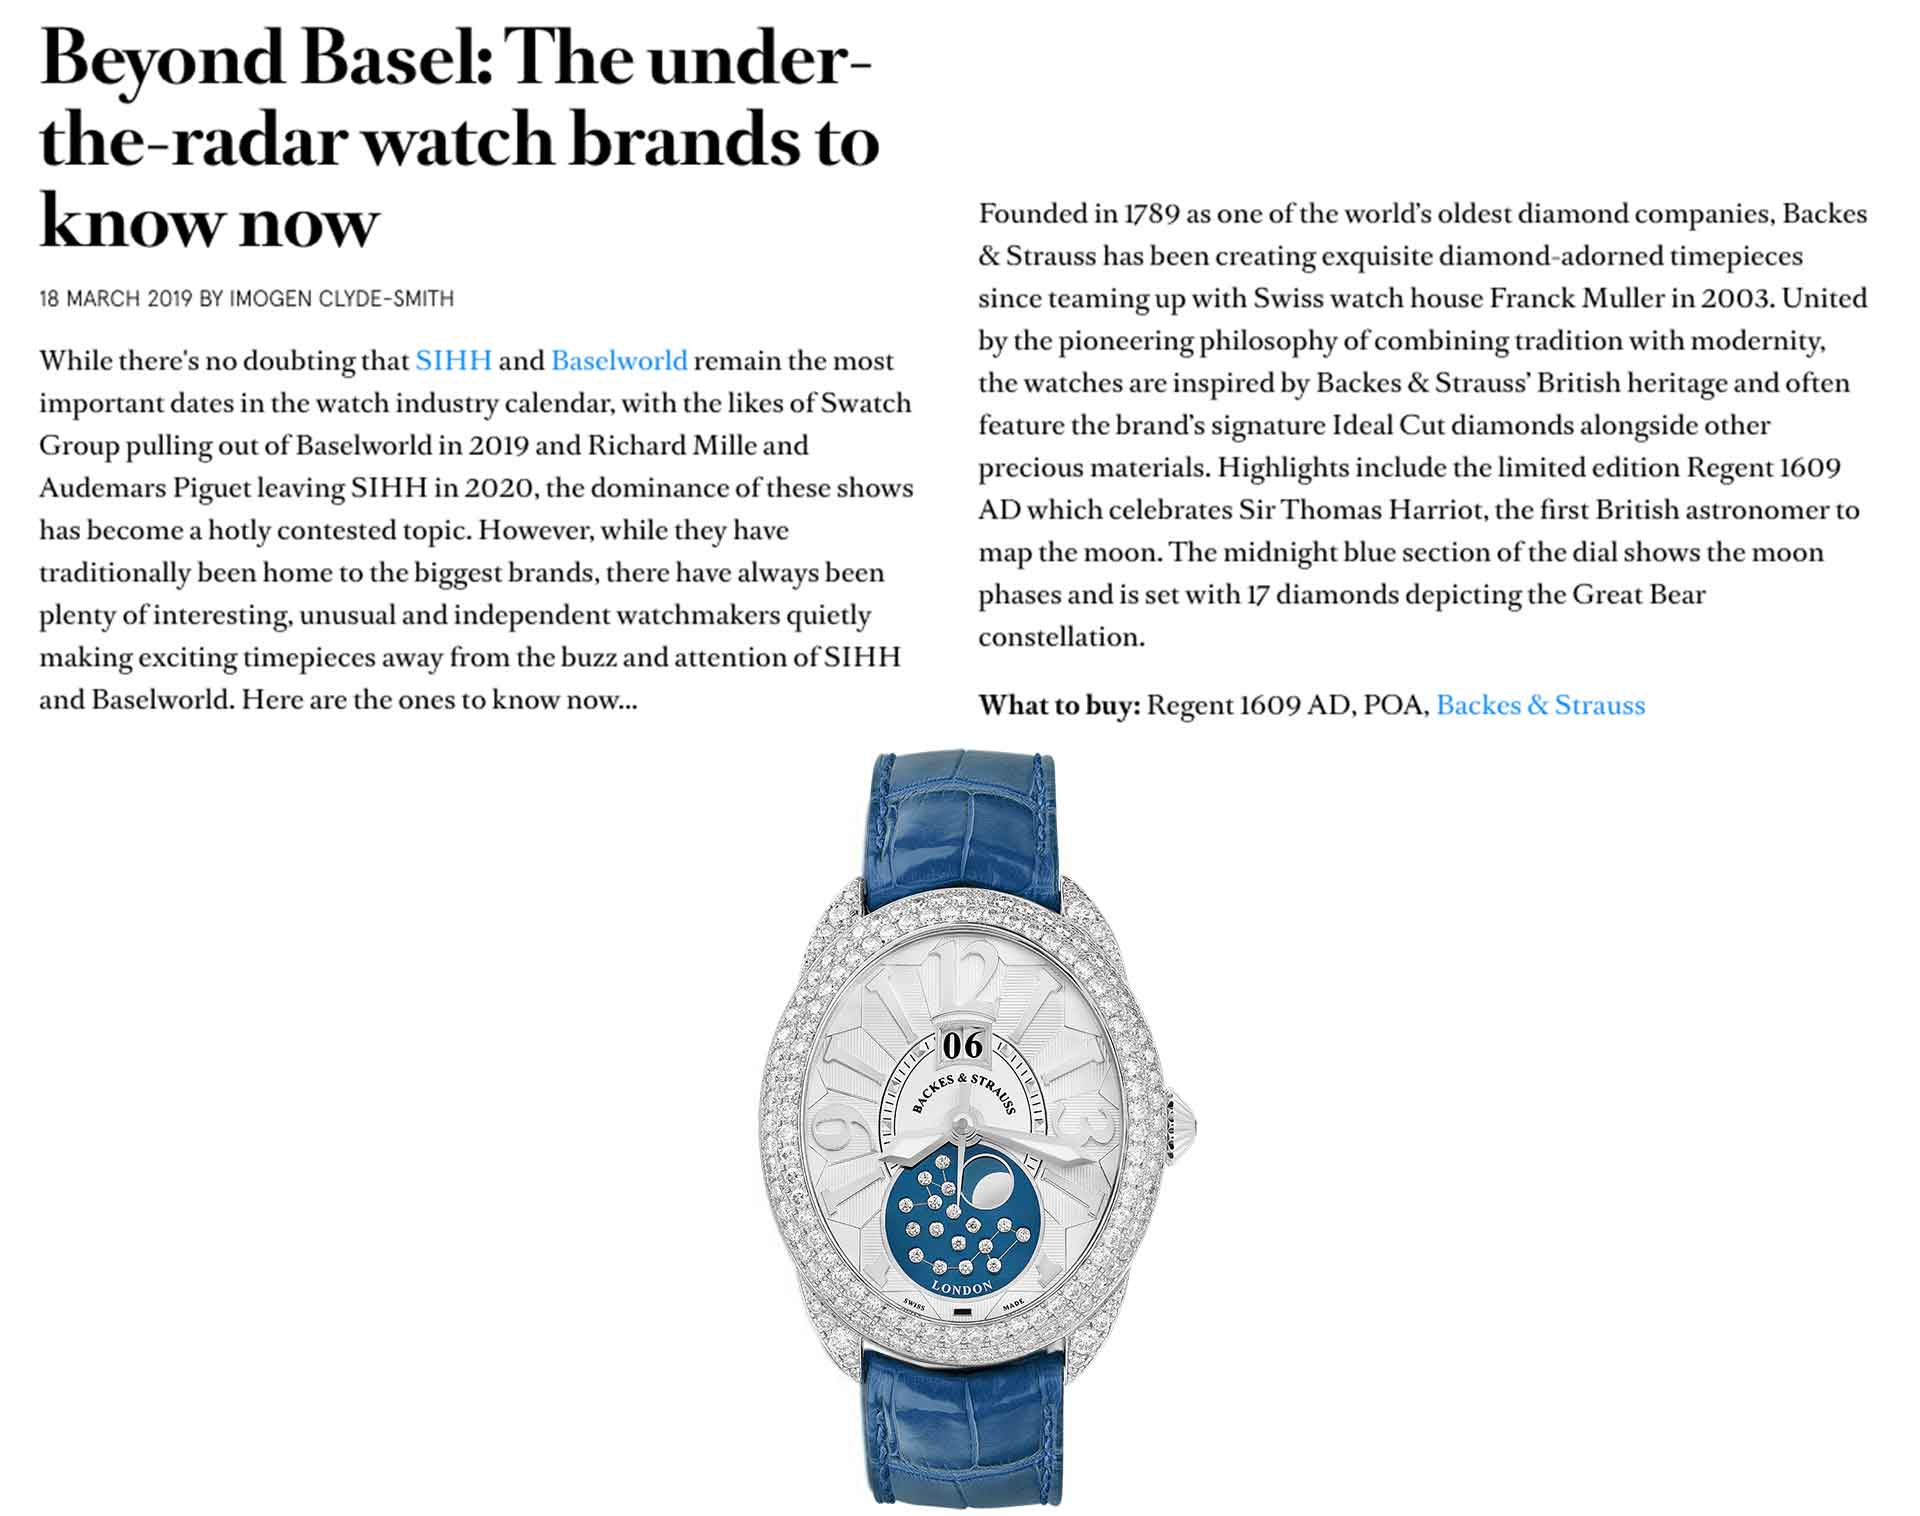 Regent 1609 AD 4047 limited edition diamond watch for her and him